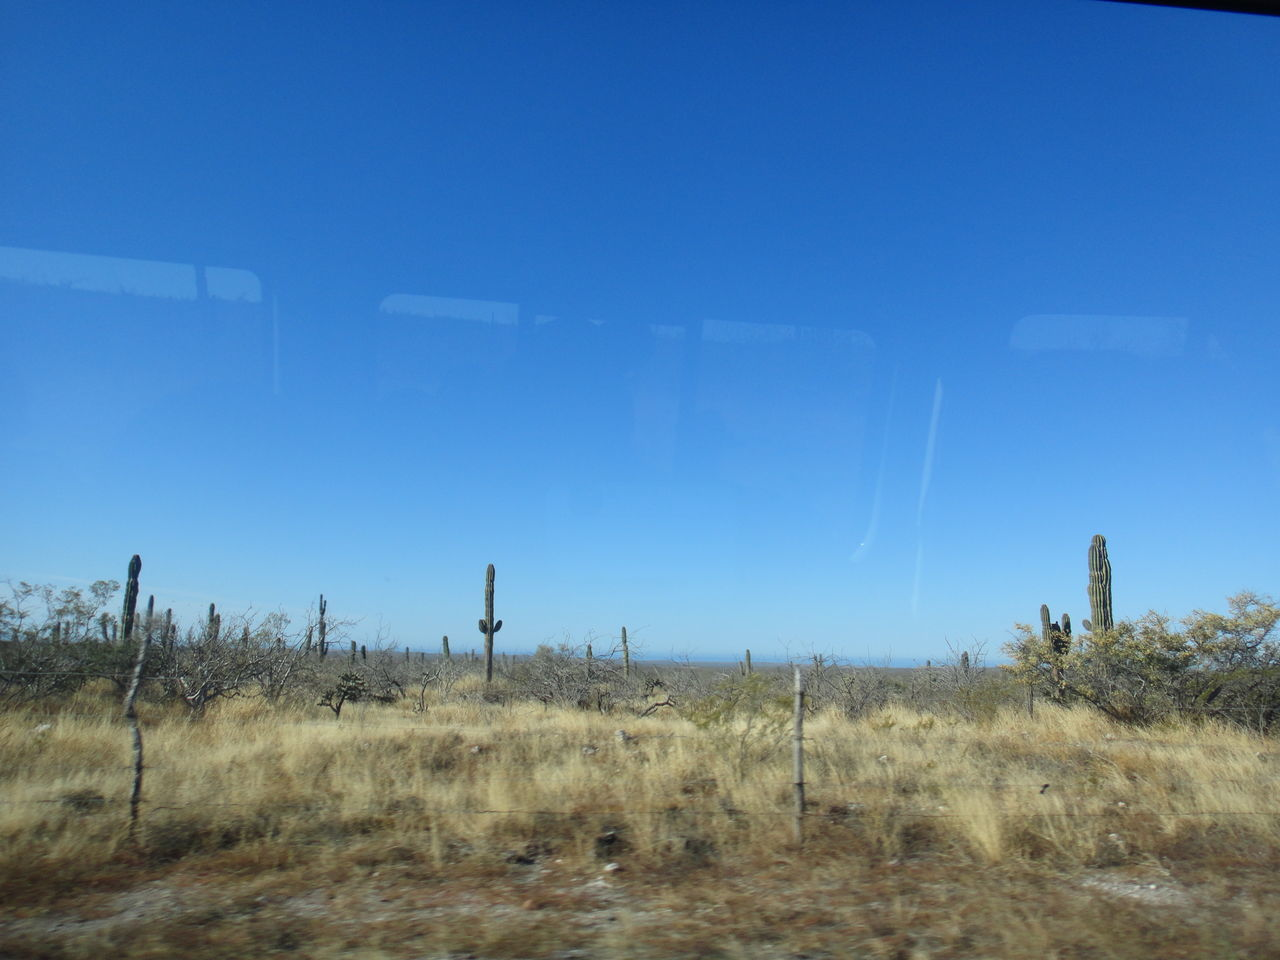 Bye Home Bye Desert Landscape Dry Grass, Cactus & Sky From The Window Nature Way To Travel